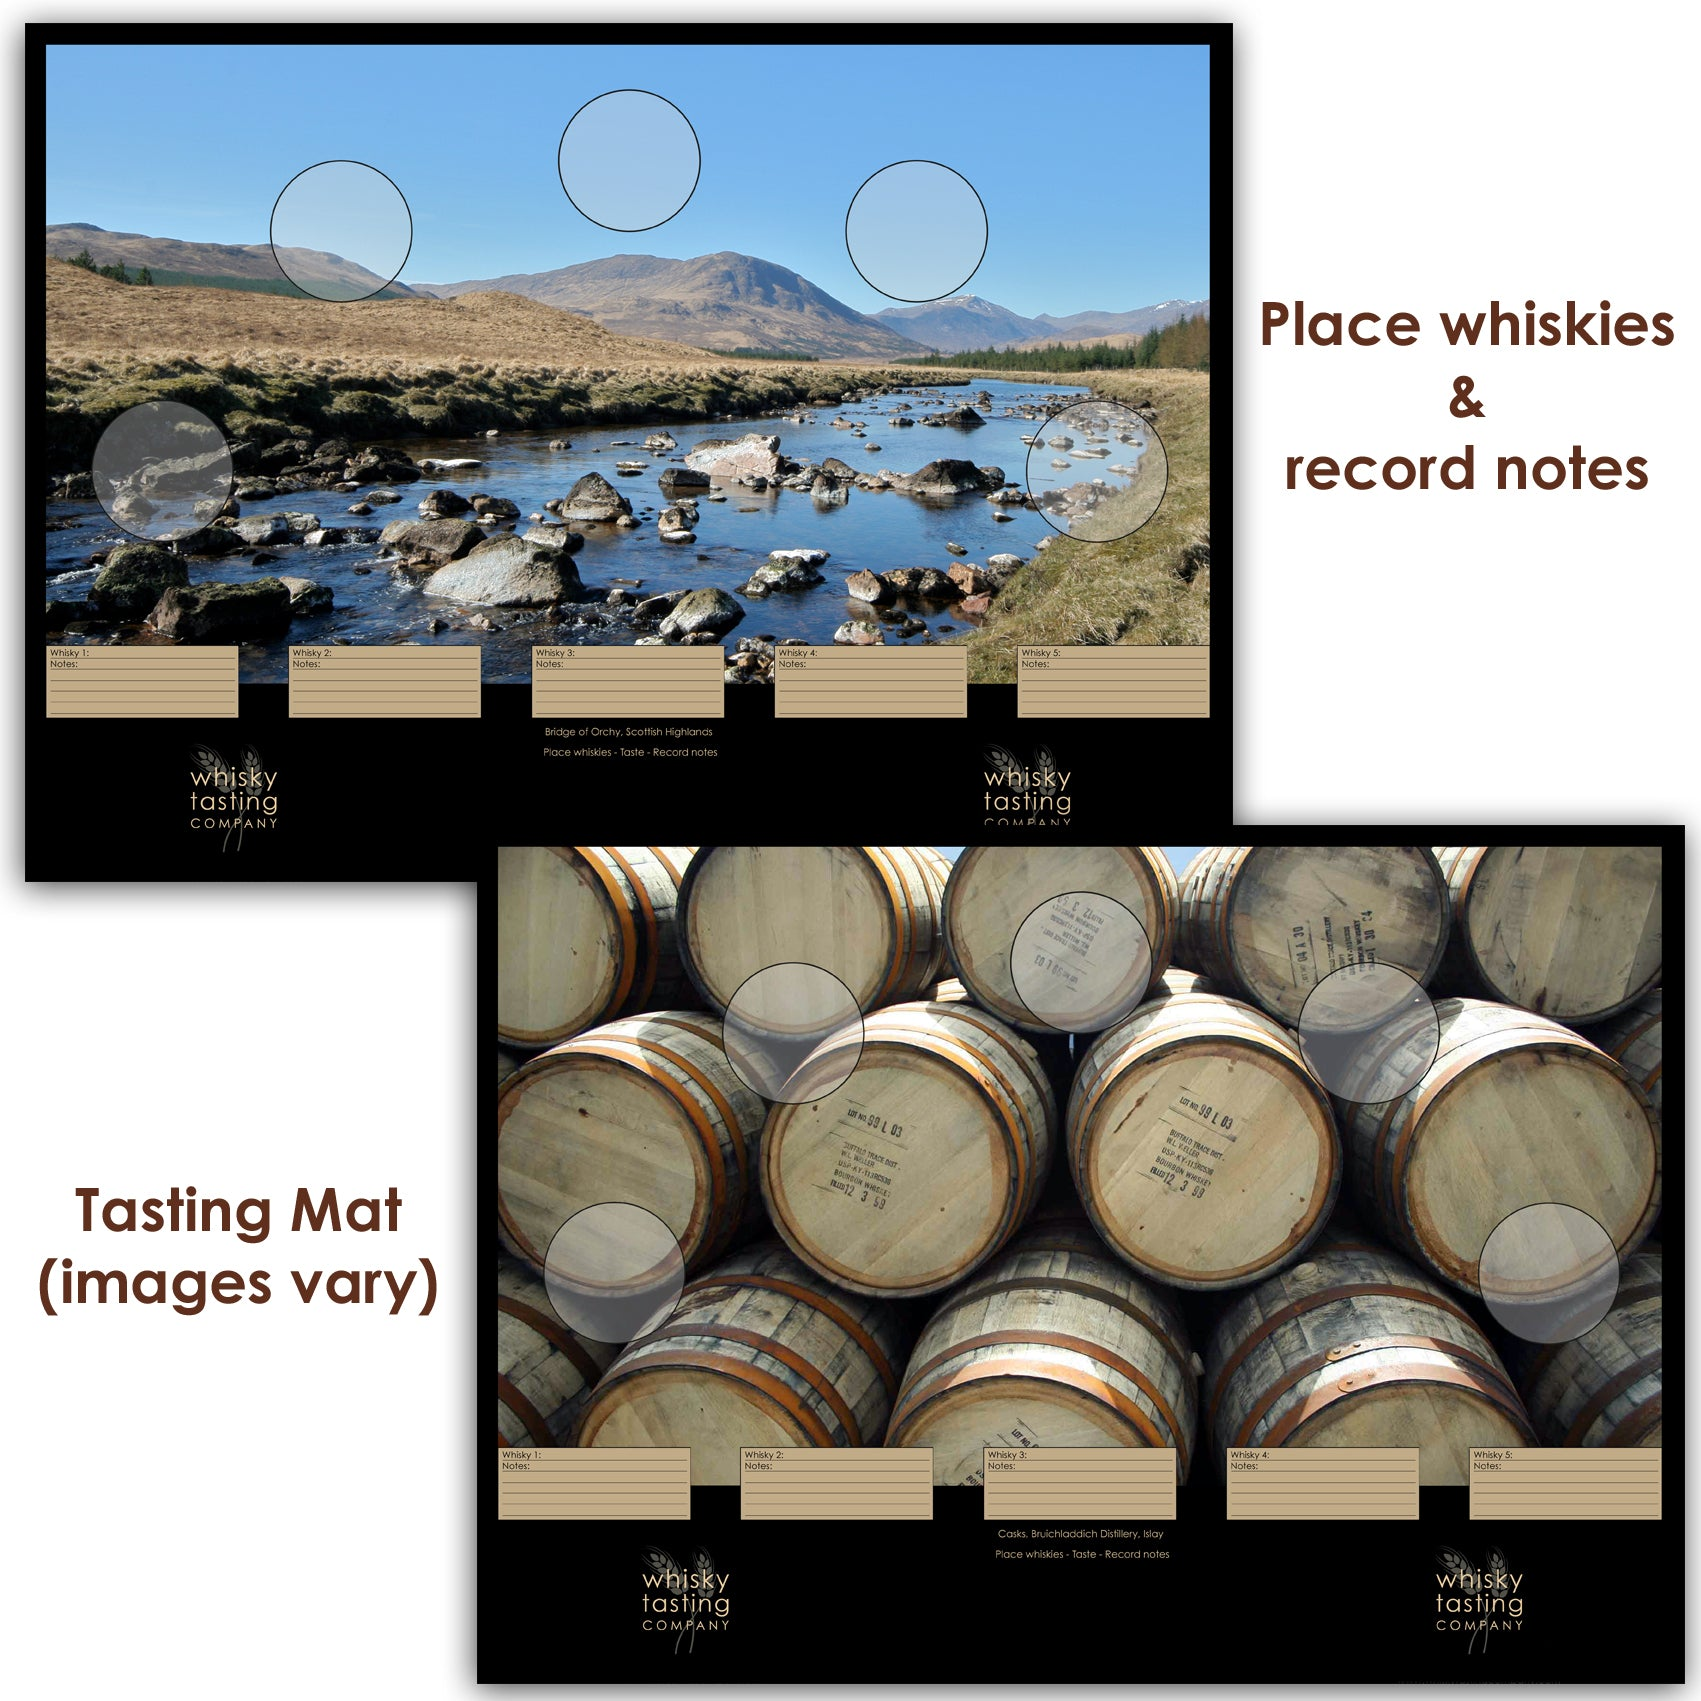 Whisky tasing mat inclued with whisky subscription boxes for tasting whisky and recording tasting notes.  Varying images of Scottish landscapes and distillery scenes.